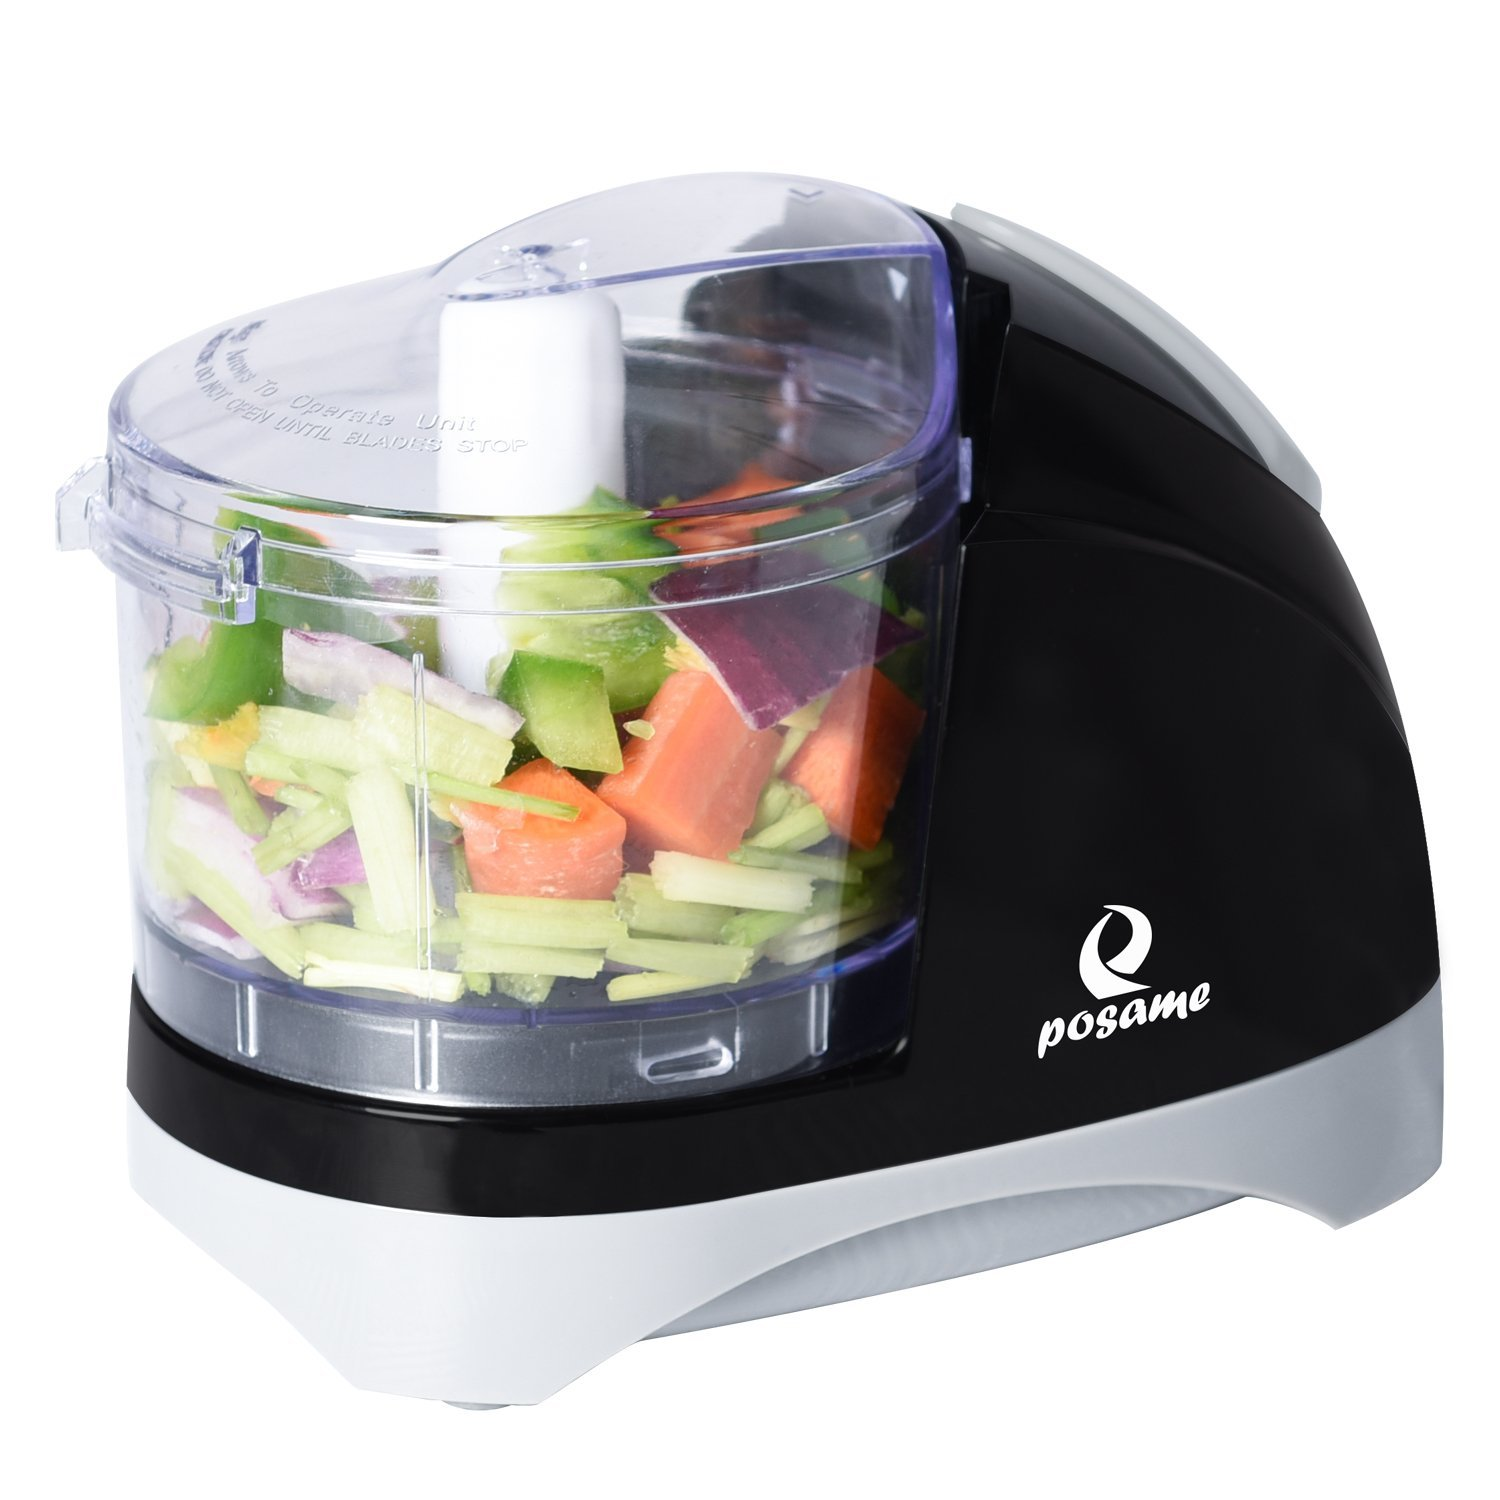 POSAME Chopper Dual Blade 1.5 Cup One-Touch Mini Food Chopper Food Processor Black SR-002SJH